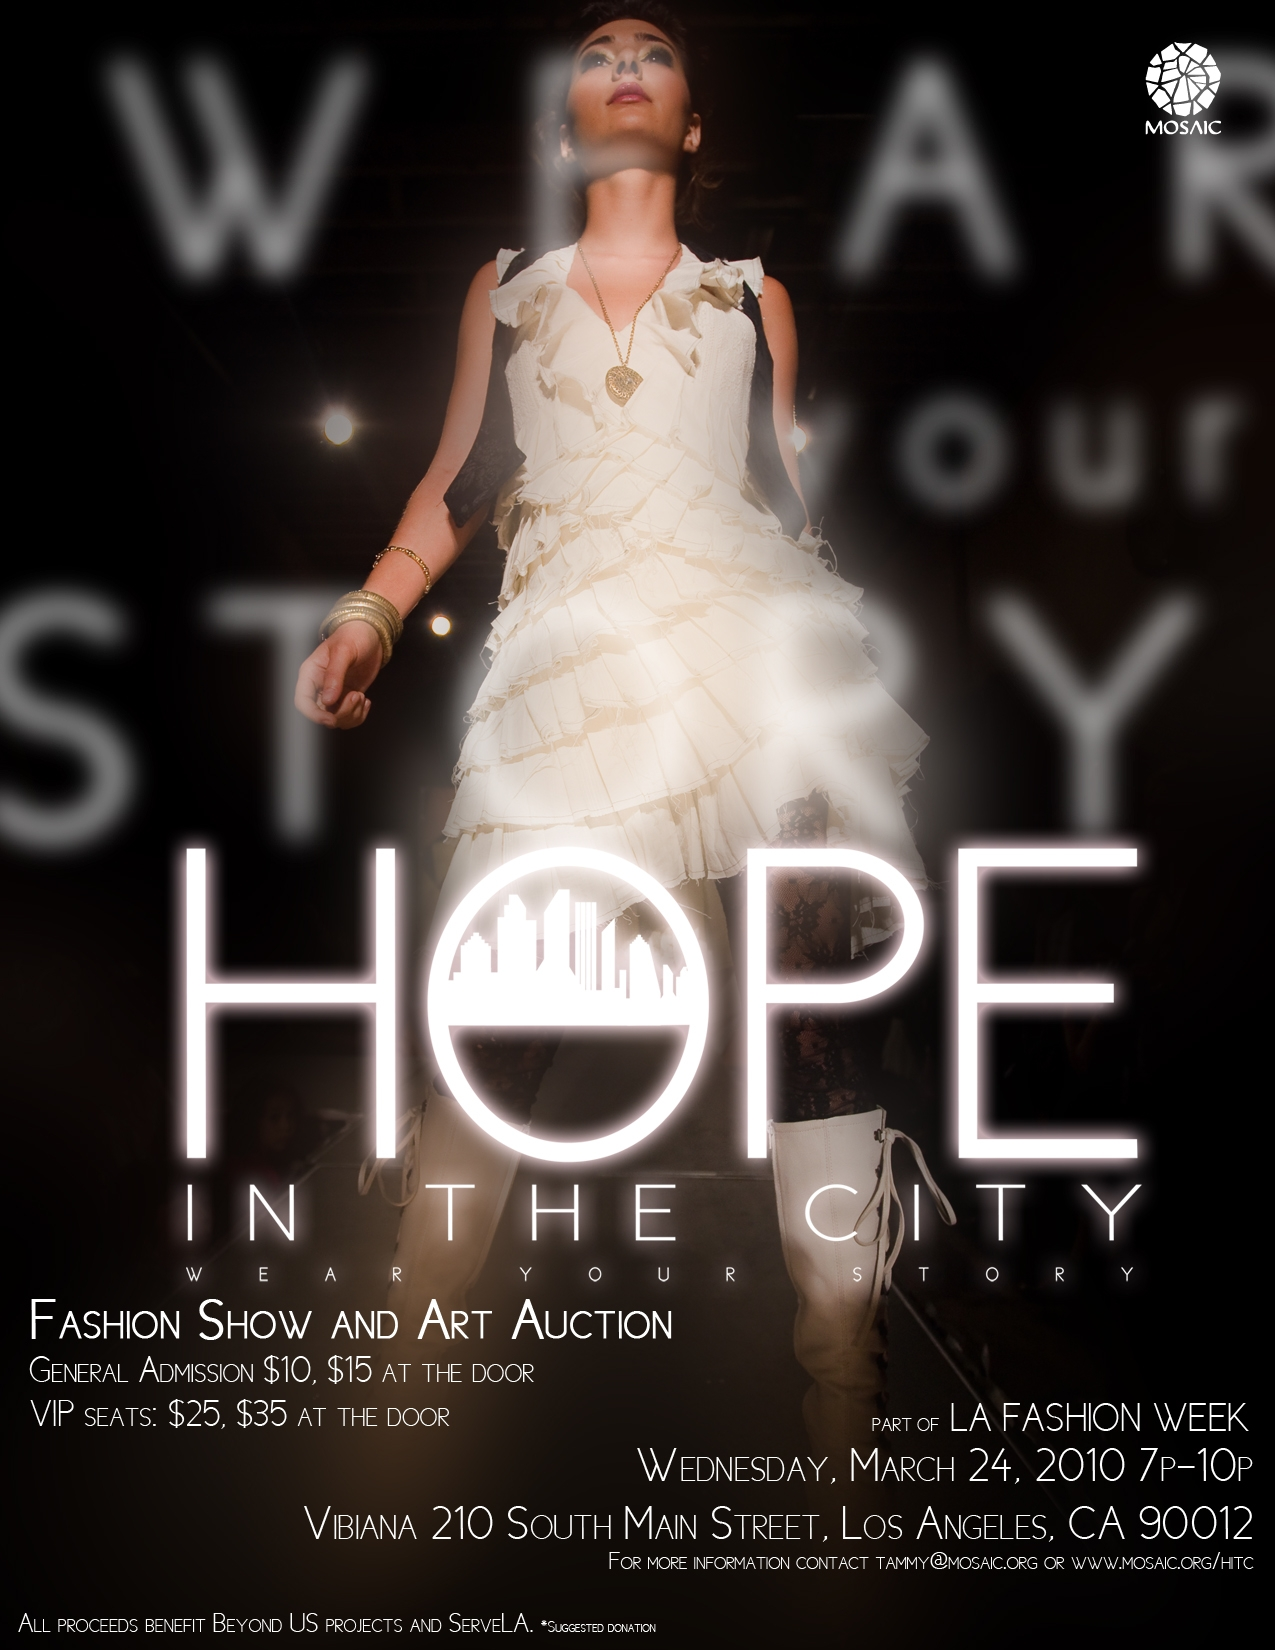 LA Fashion Week: Hope in the City fashion show and art auction for charity